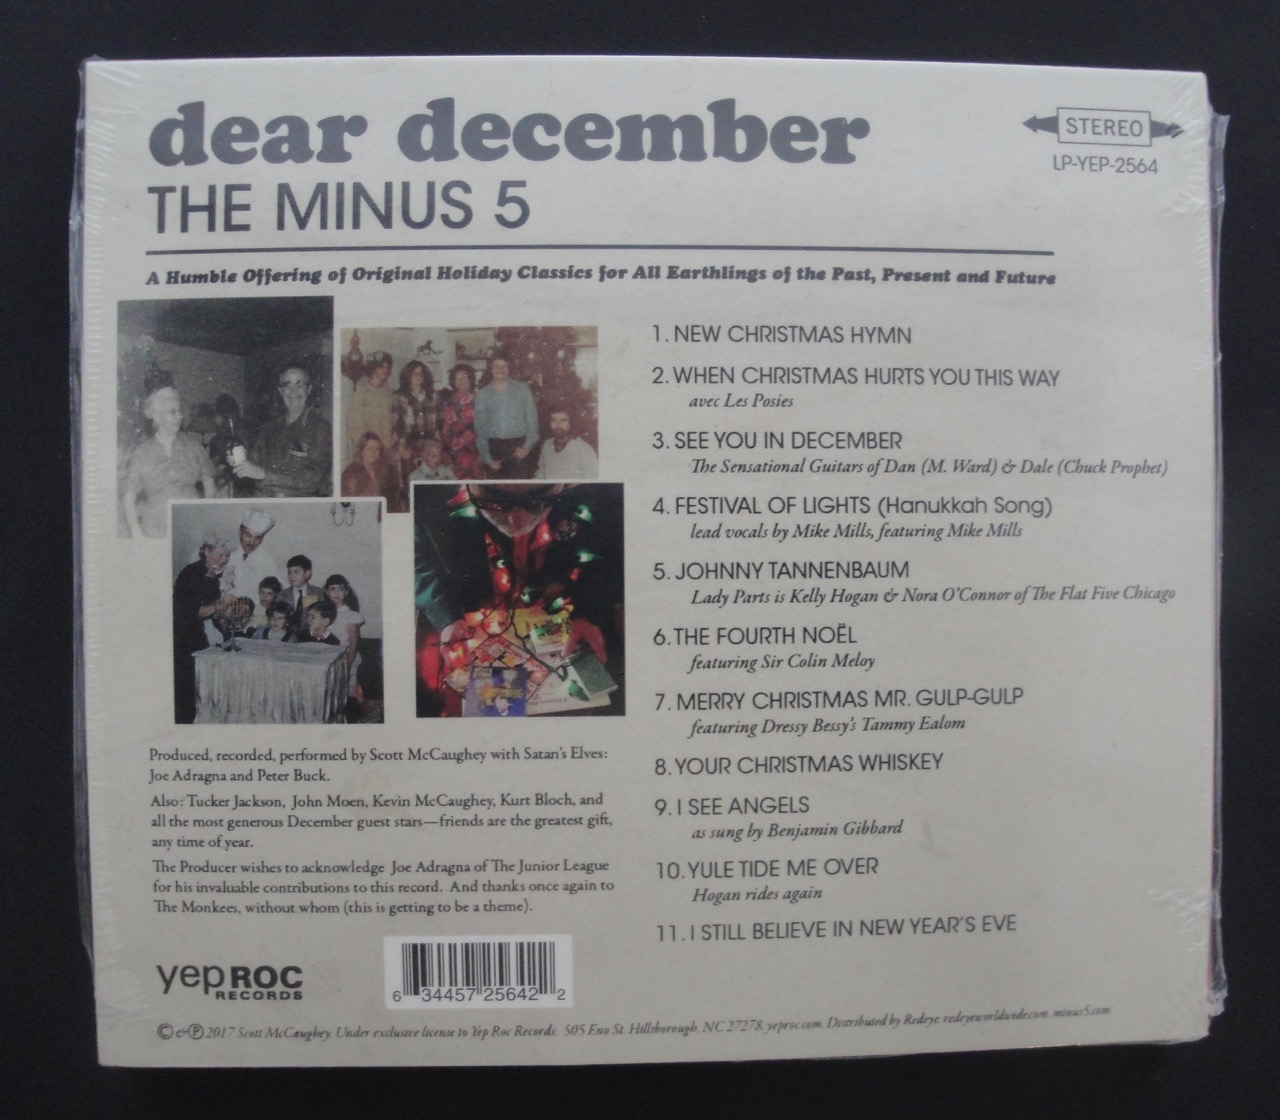 The Minus 5 - Dear December - Christmas CD (Compact Disc), Yep Roc, 2017